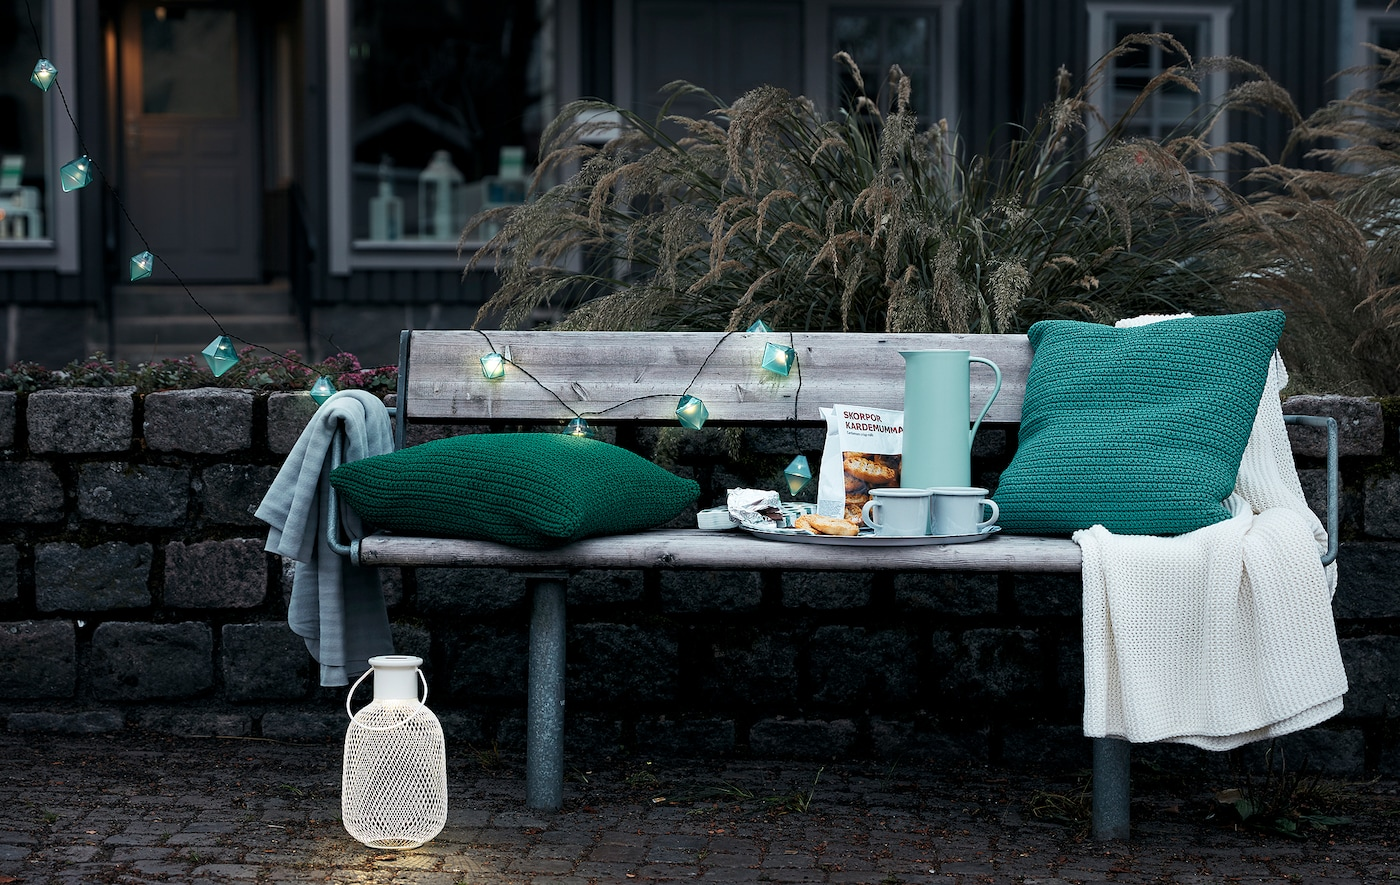 Outdoor, early-evening city setting with a public bench set with a coffee tray, cushions, a throw and decorative lighting.